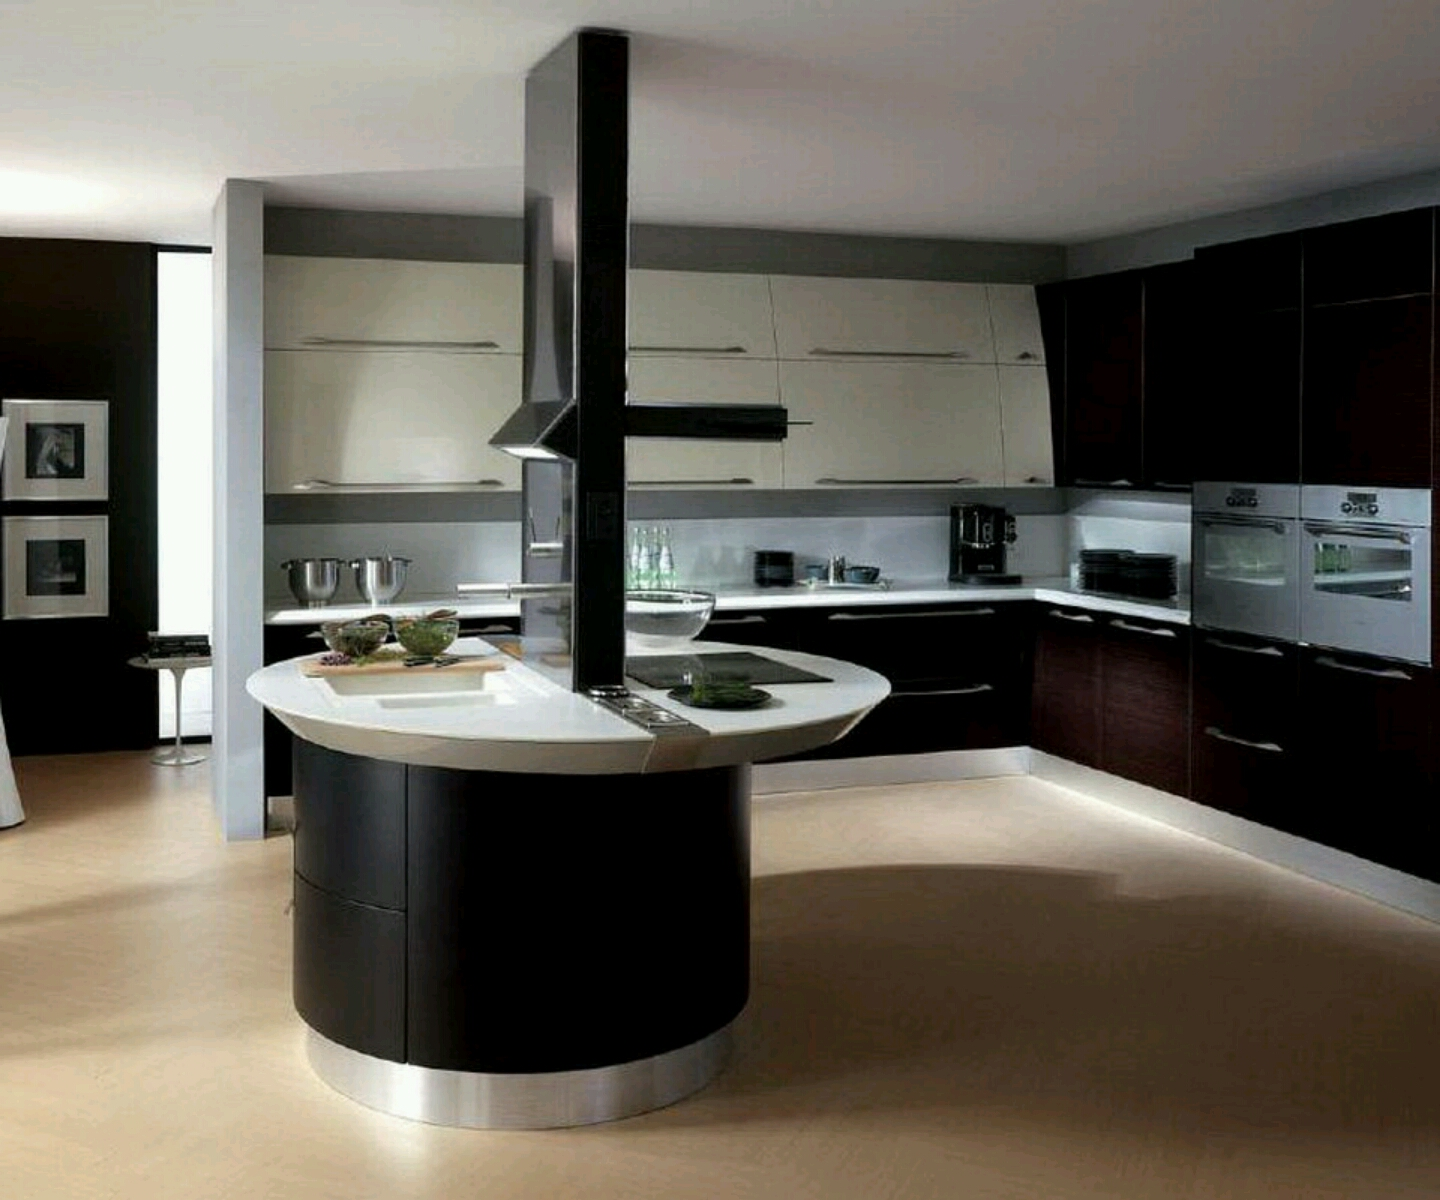 Modern kitchen cabinet design for New kitchen ideas photos